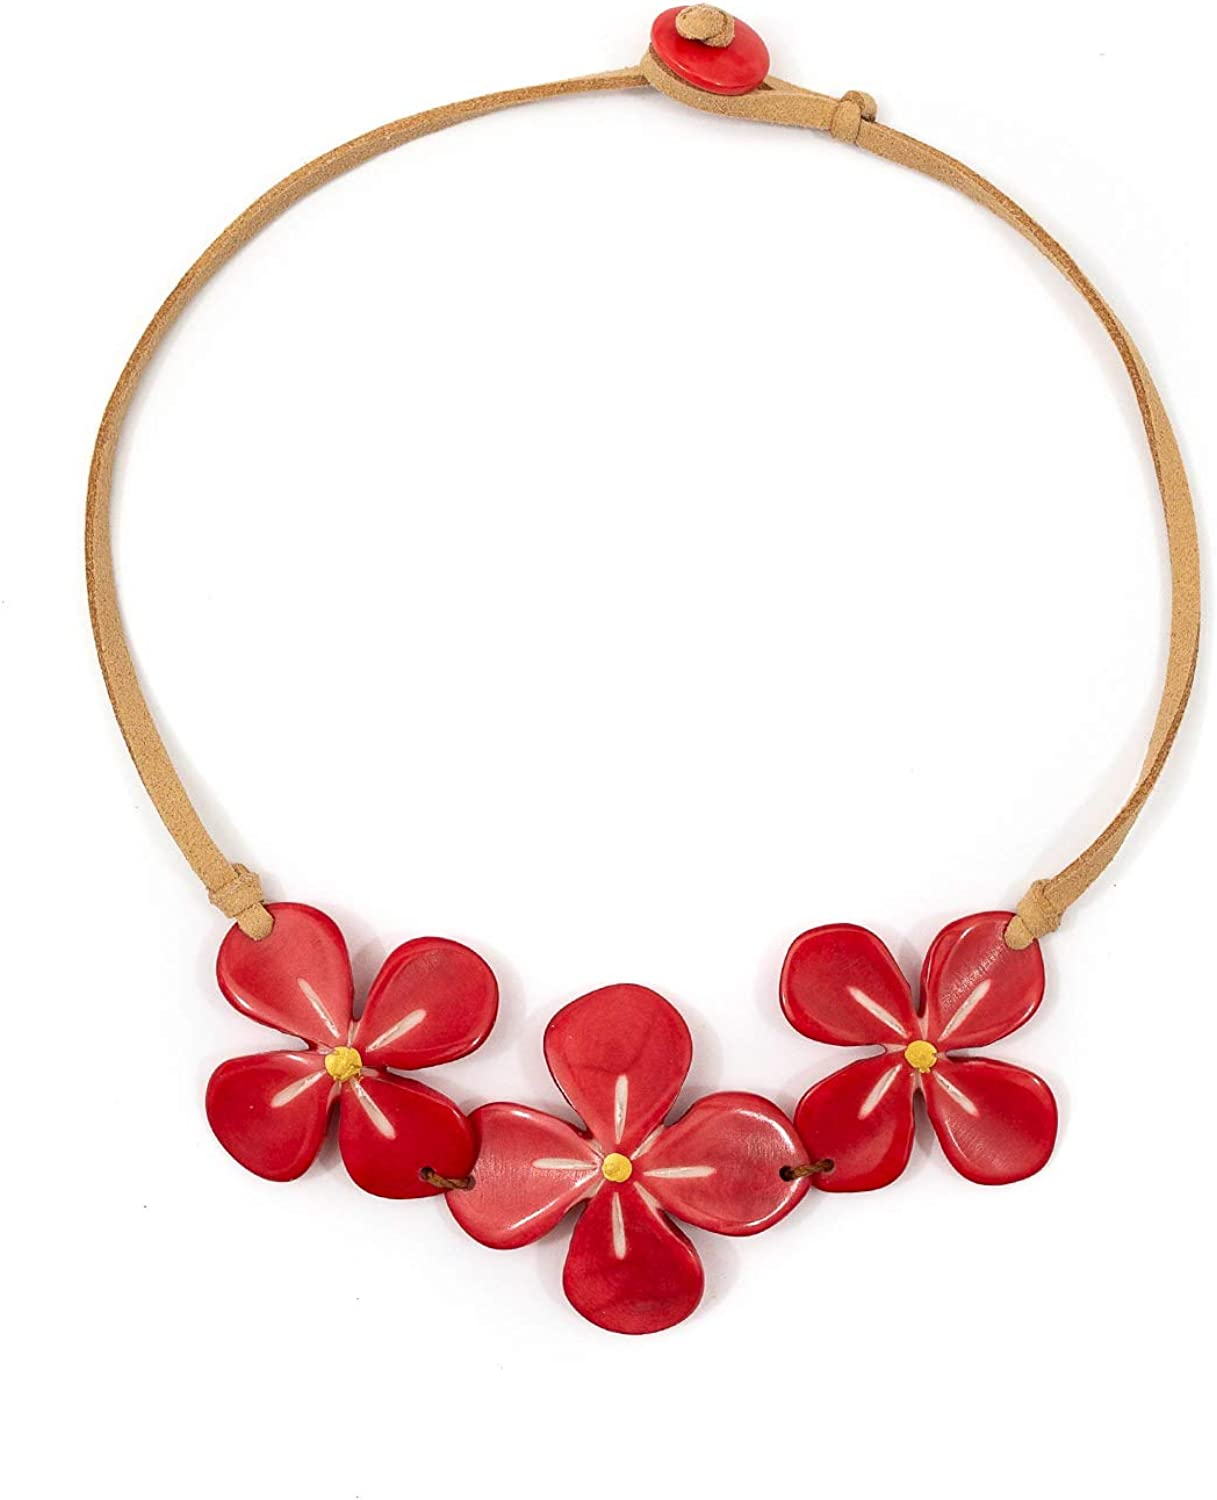 Tagua Hibiscus Fashion Necklace Tagua Nut Ethical Bead Slow Fashion Beaded Wooden Eco Friendly Boho Unique Handmade Statement Jewelry